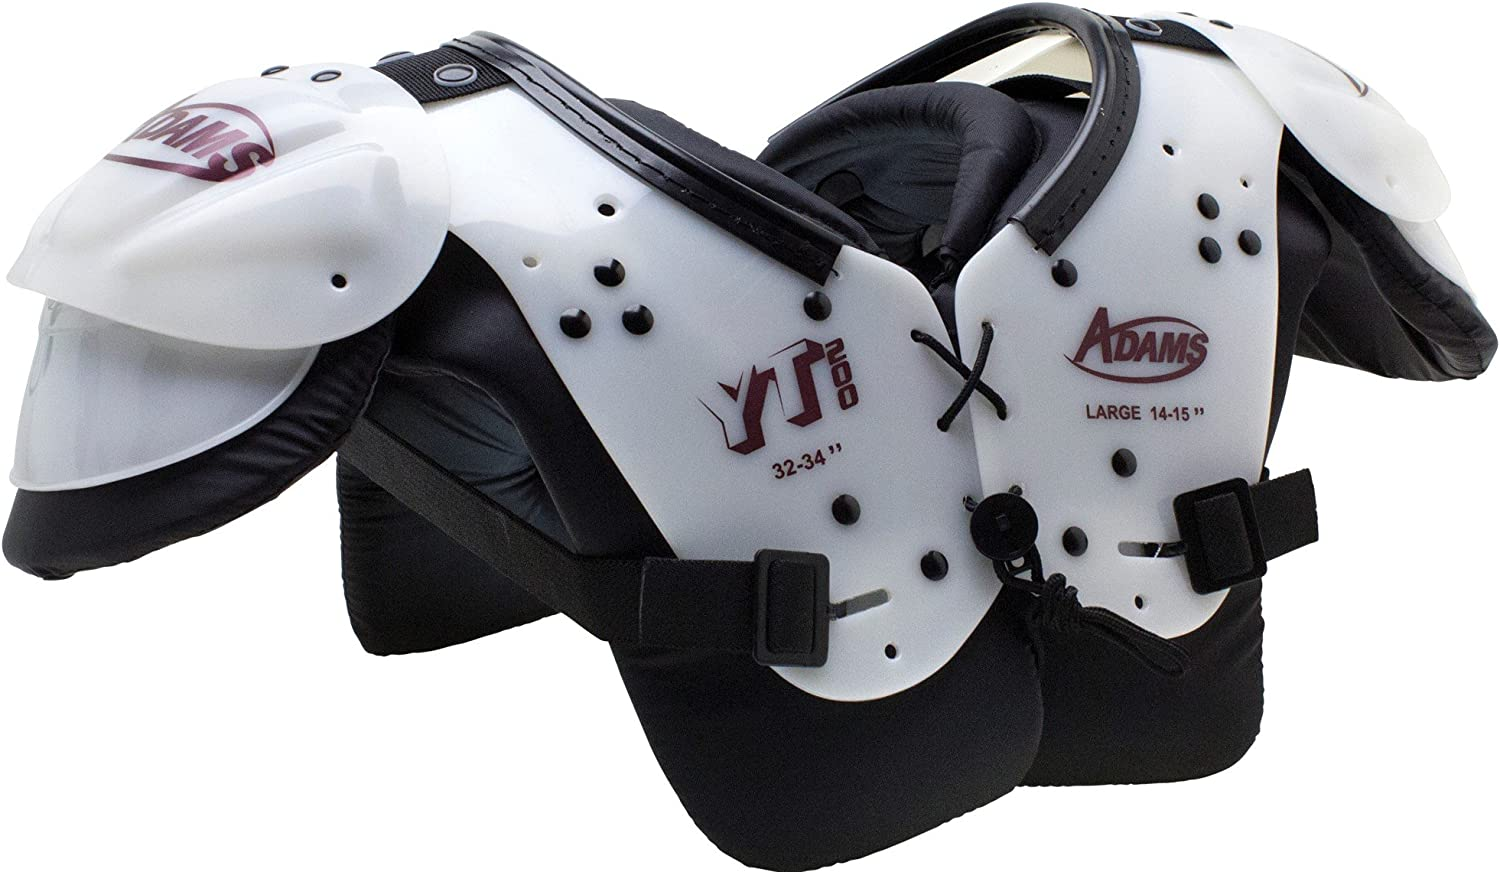 ADAMS USA Youth Yt200 Blocker Shoulder Pads White Maroon, X-Large : Sports & Outdoors